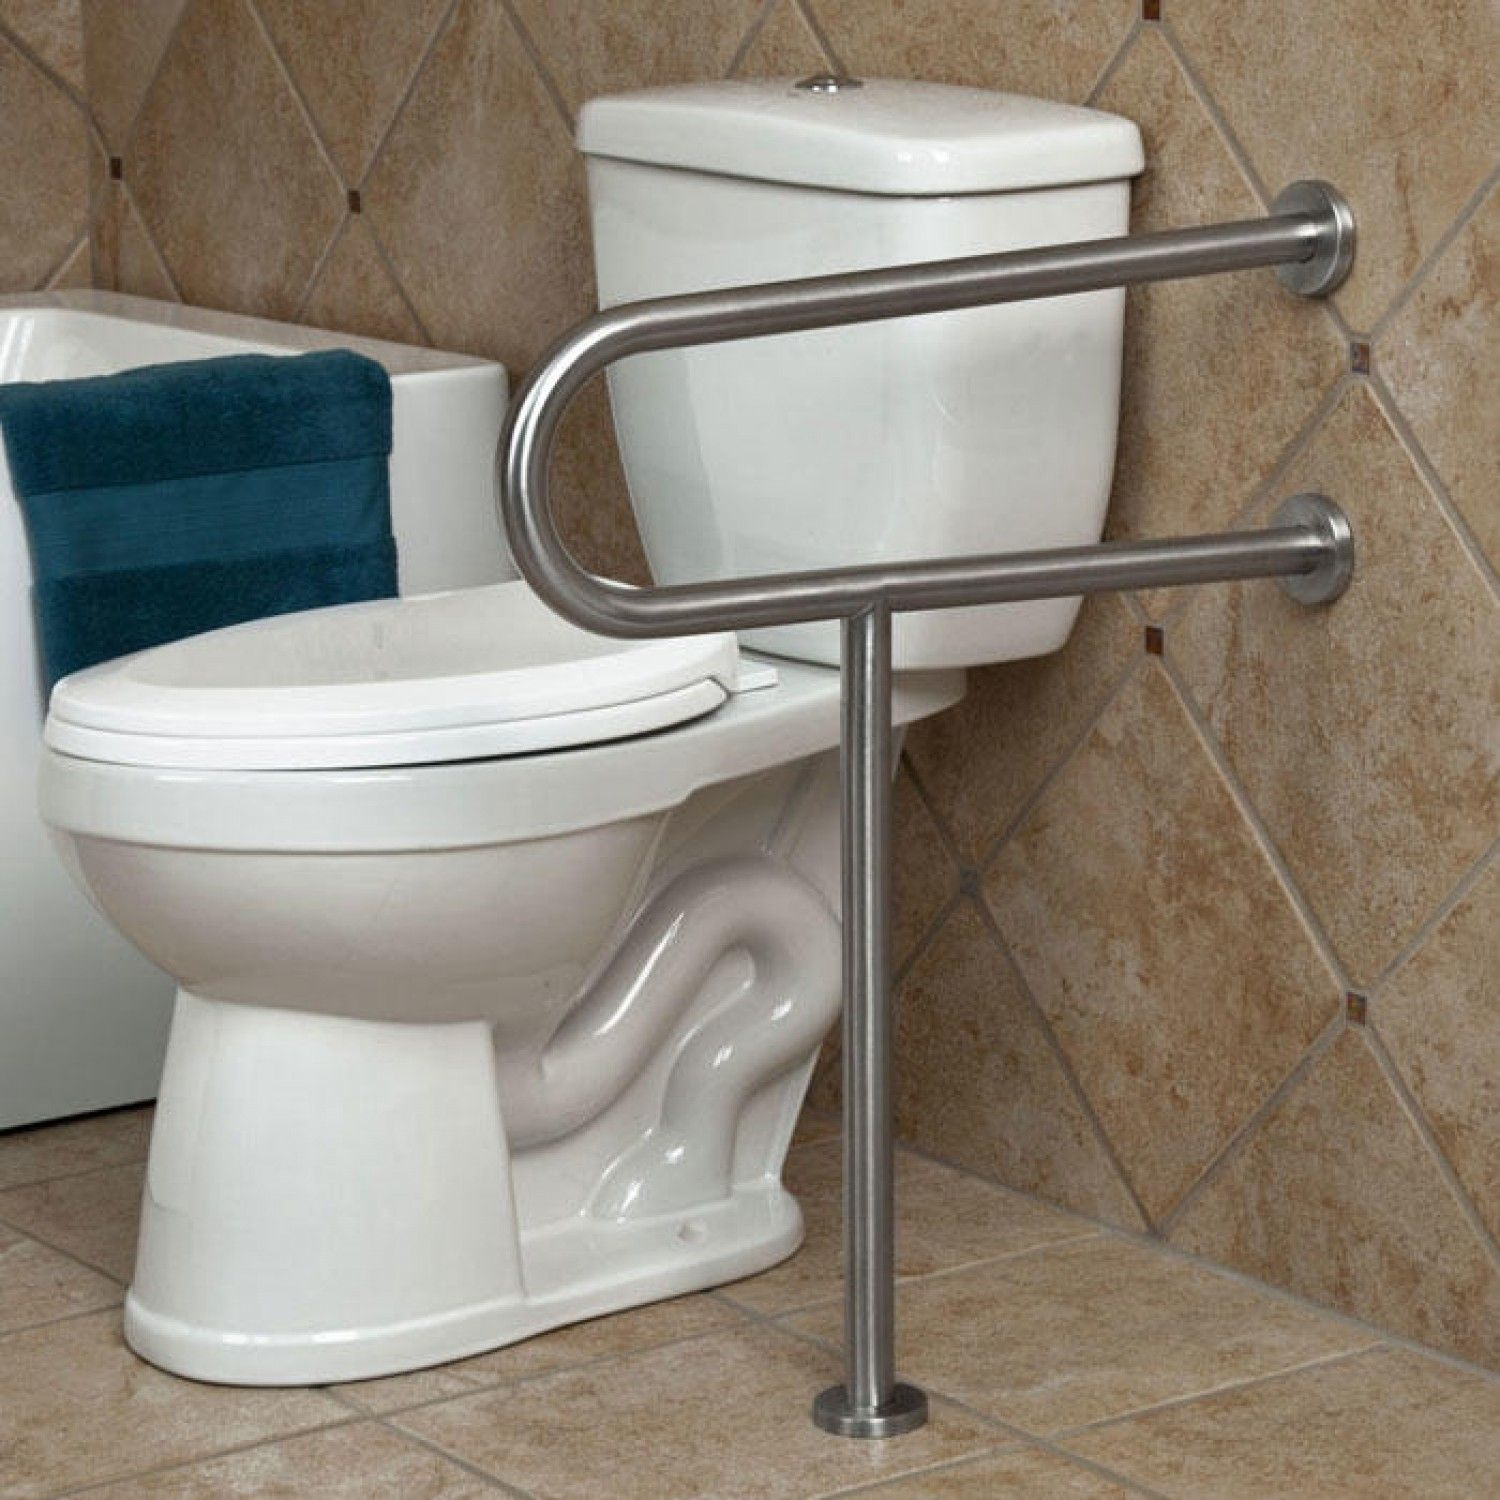 Toilet Grab Bars Safety Handrails handicap bathroom toilet bars - bathroom design ideas | handicap